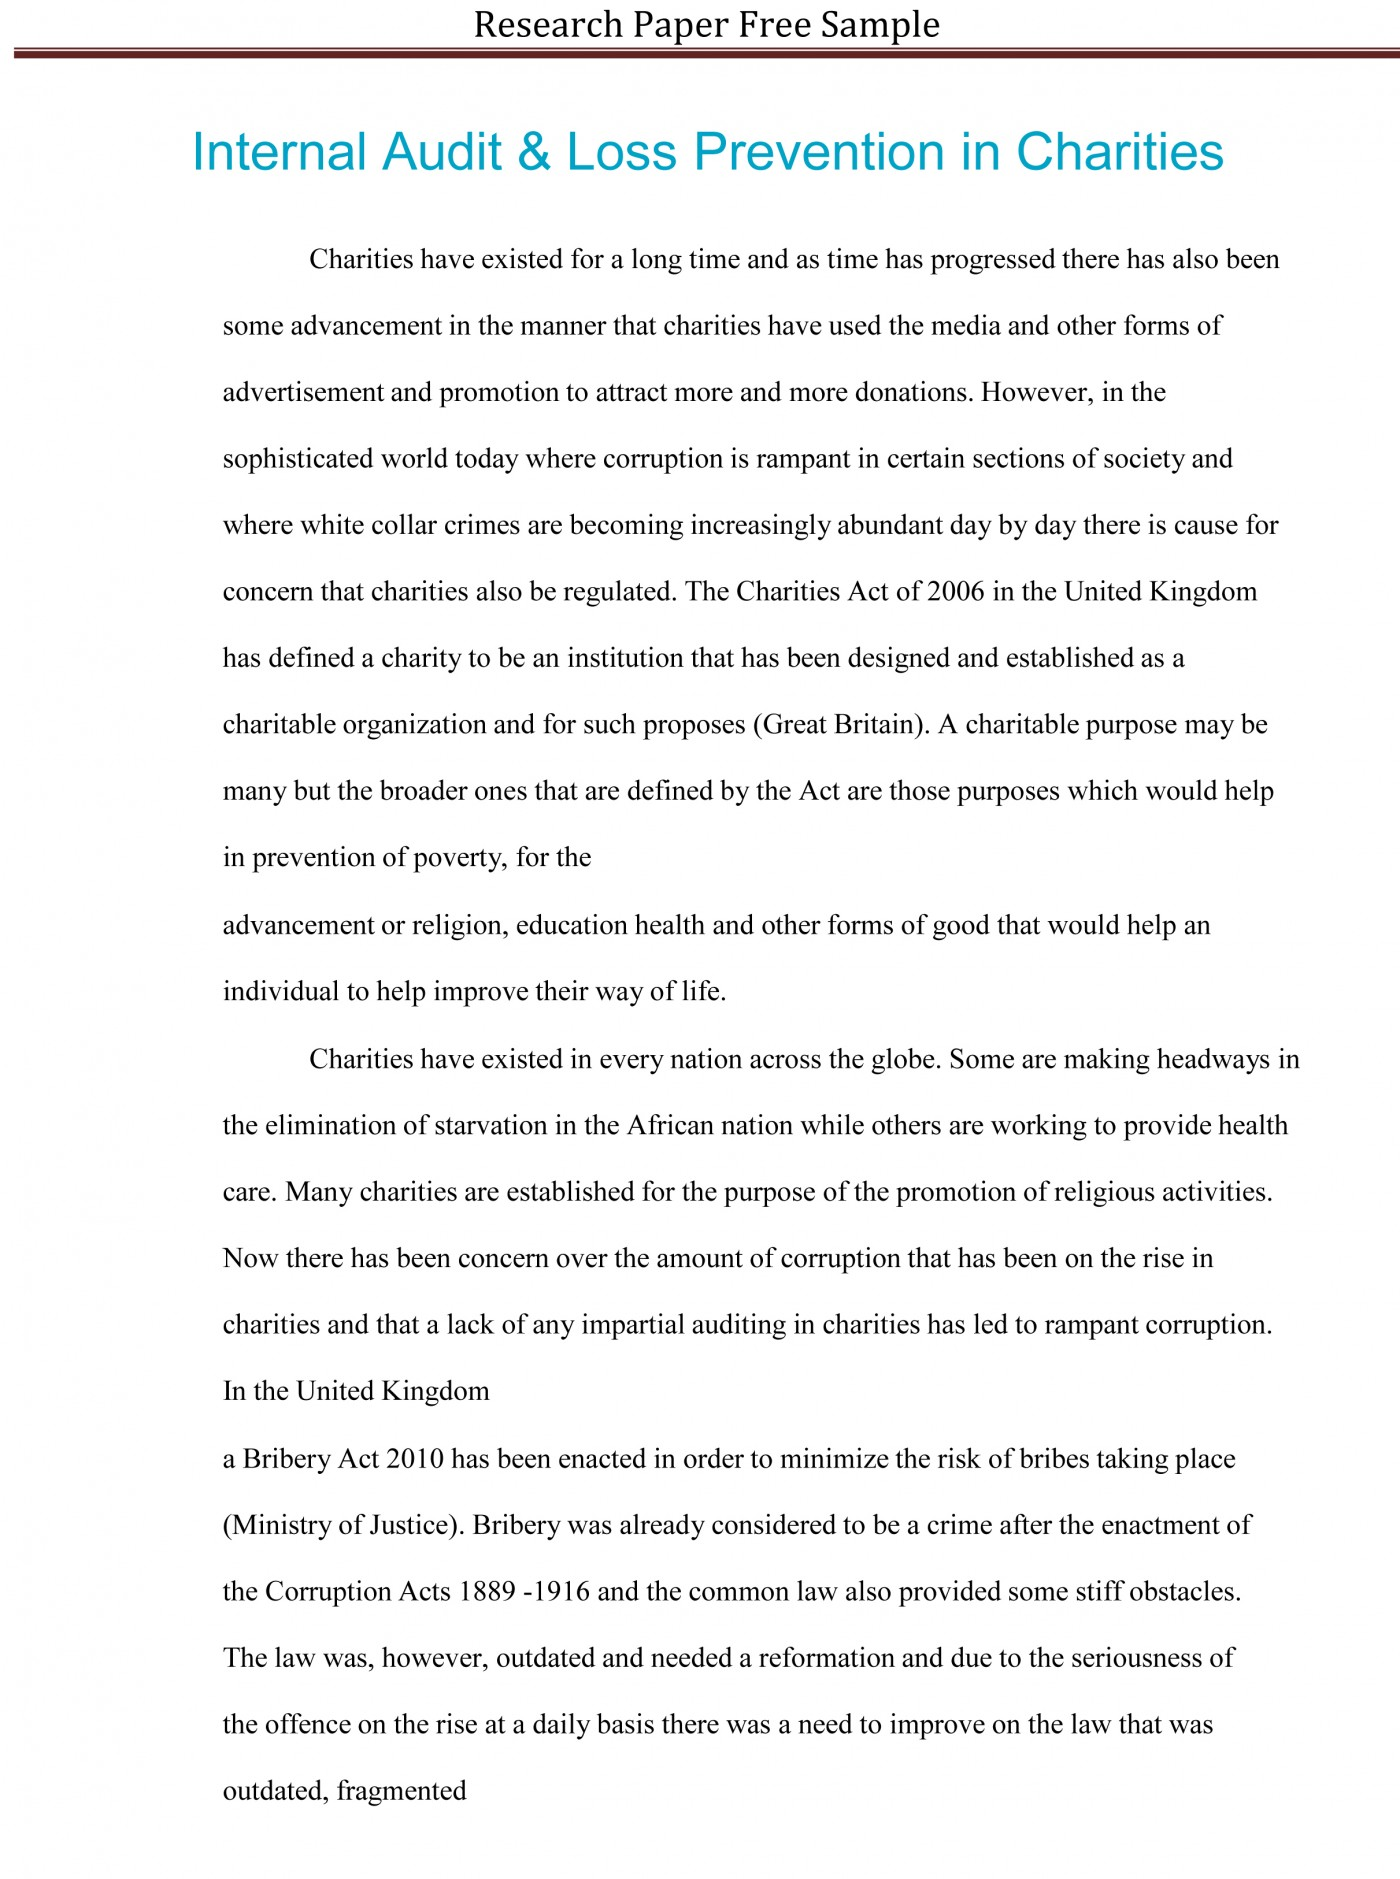 021 Research Paper Sample Essay Example High School Experience Dreaded Free 1400